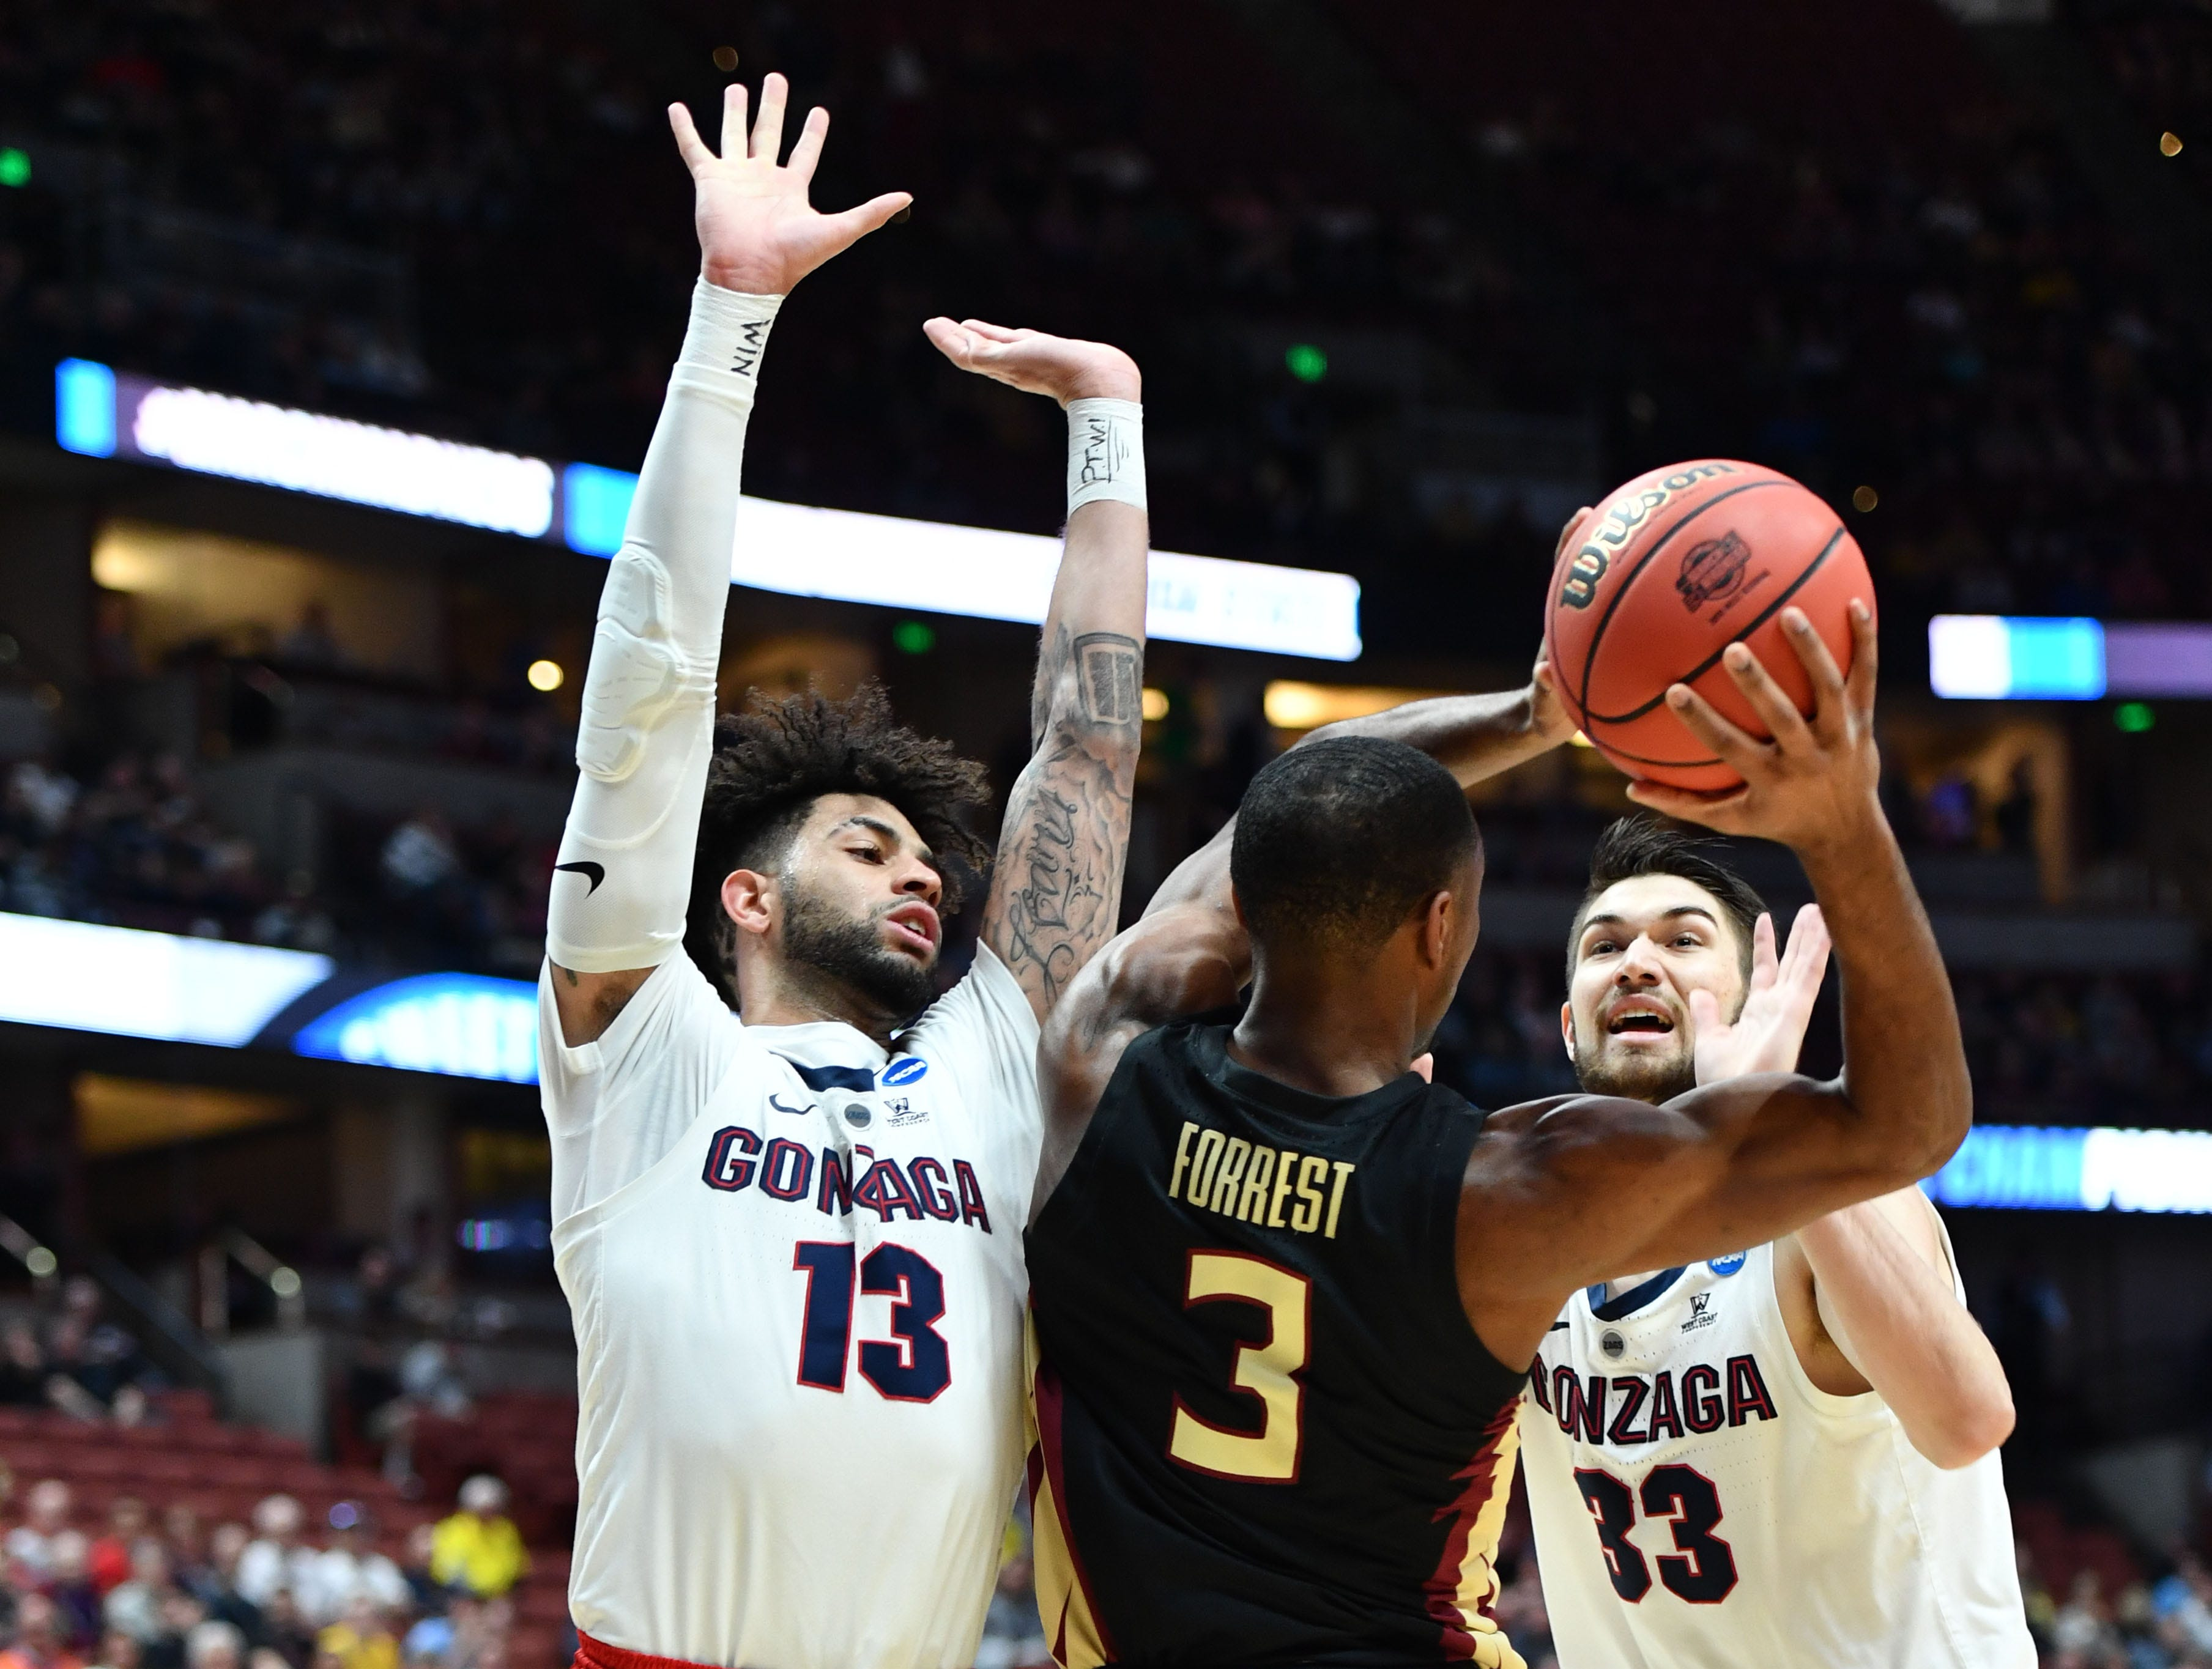 March 28, 2019; Anaheim, CA, USA; Gonzaga Bulldogs guard Josh Perkins (13) and forward Killian Tillie (33) defend against Florida State Seminoles guard Trent Forrest (3) during the first half in the semifinals of the west regional of the 2019 NCAA Tournament at Honda Center. Mandatory Credit: Robert Hanashiro-USA TODAY Sports